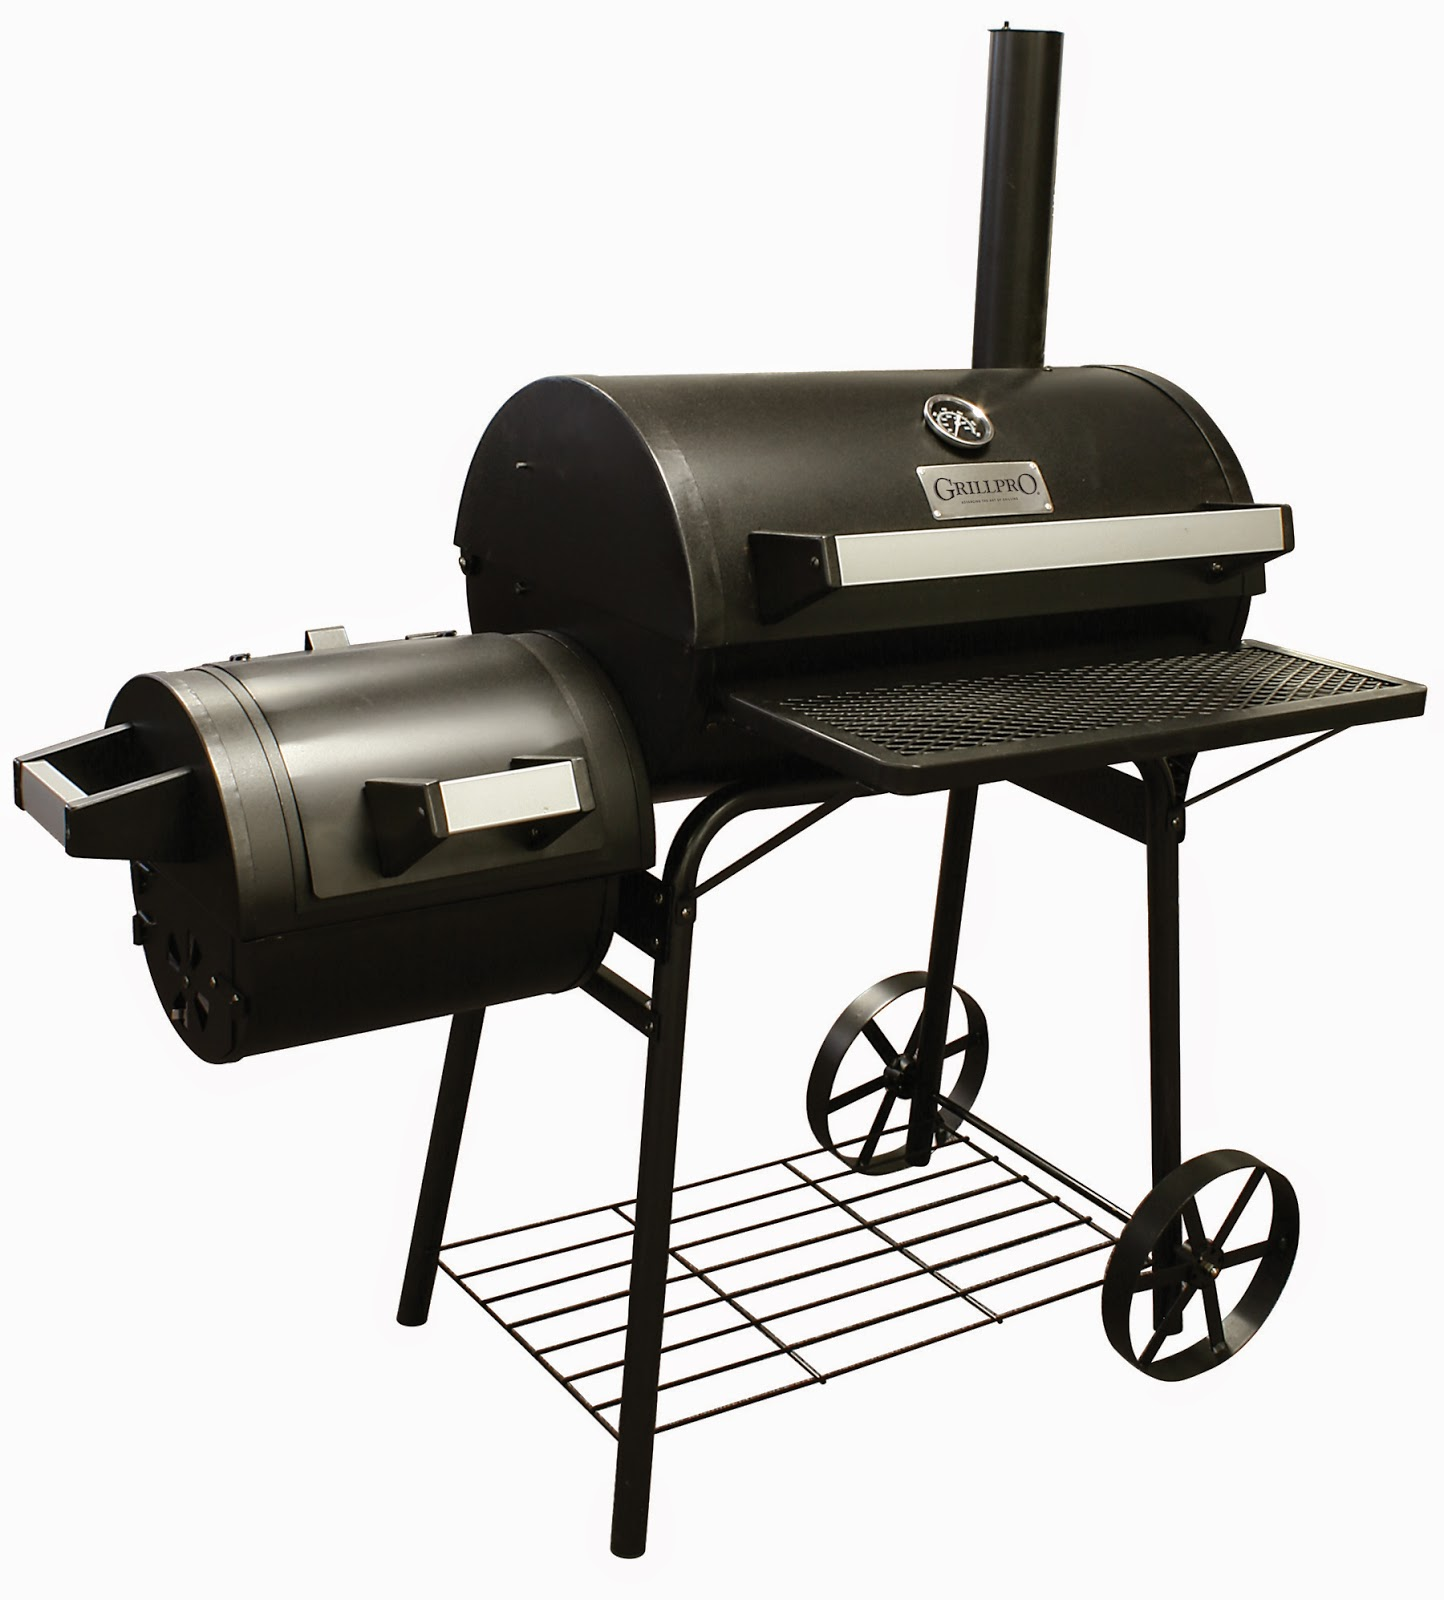 starving foodie win a grill pro bbq smoker from ontario. Black Bedroom Furniture Sets. Home Design Ideas